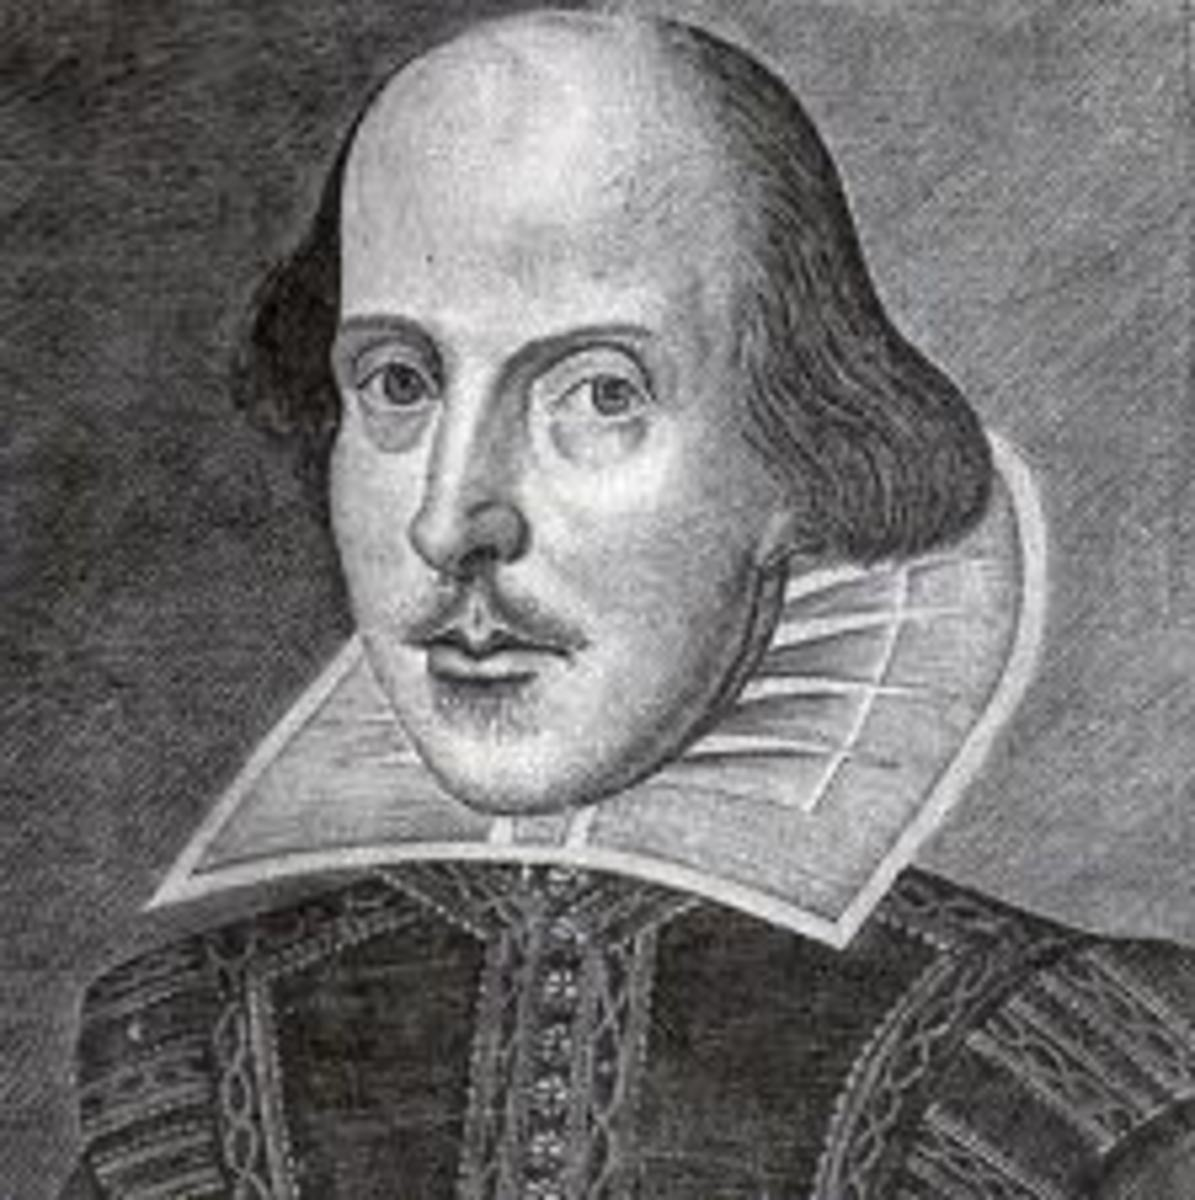 William Shakespeare is one of the most influential poets in literature.